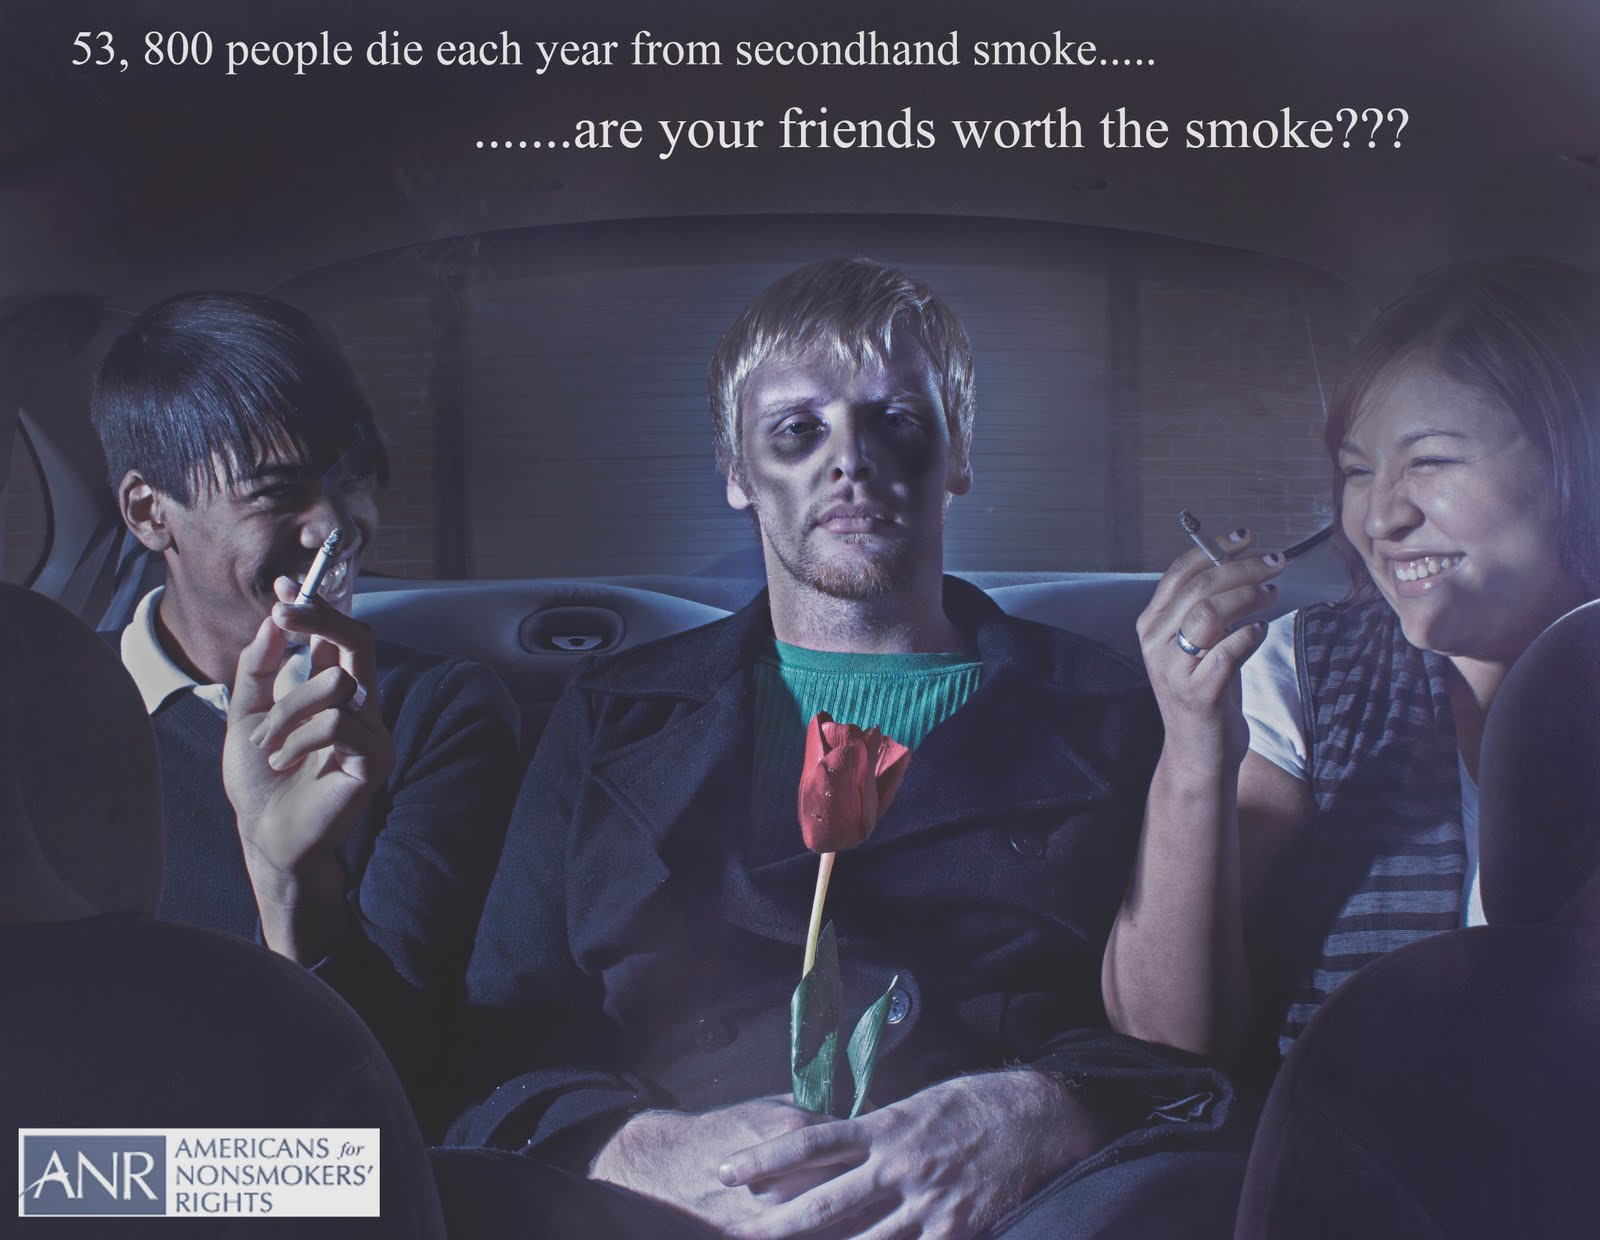 Health Effects of Secondhand Smoke